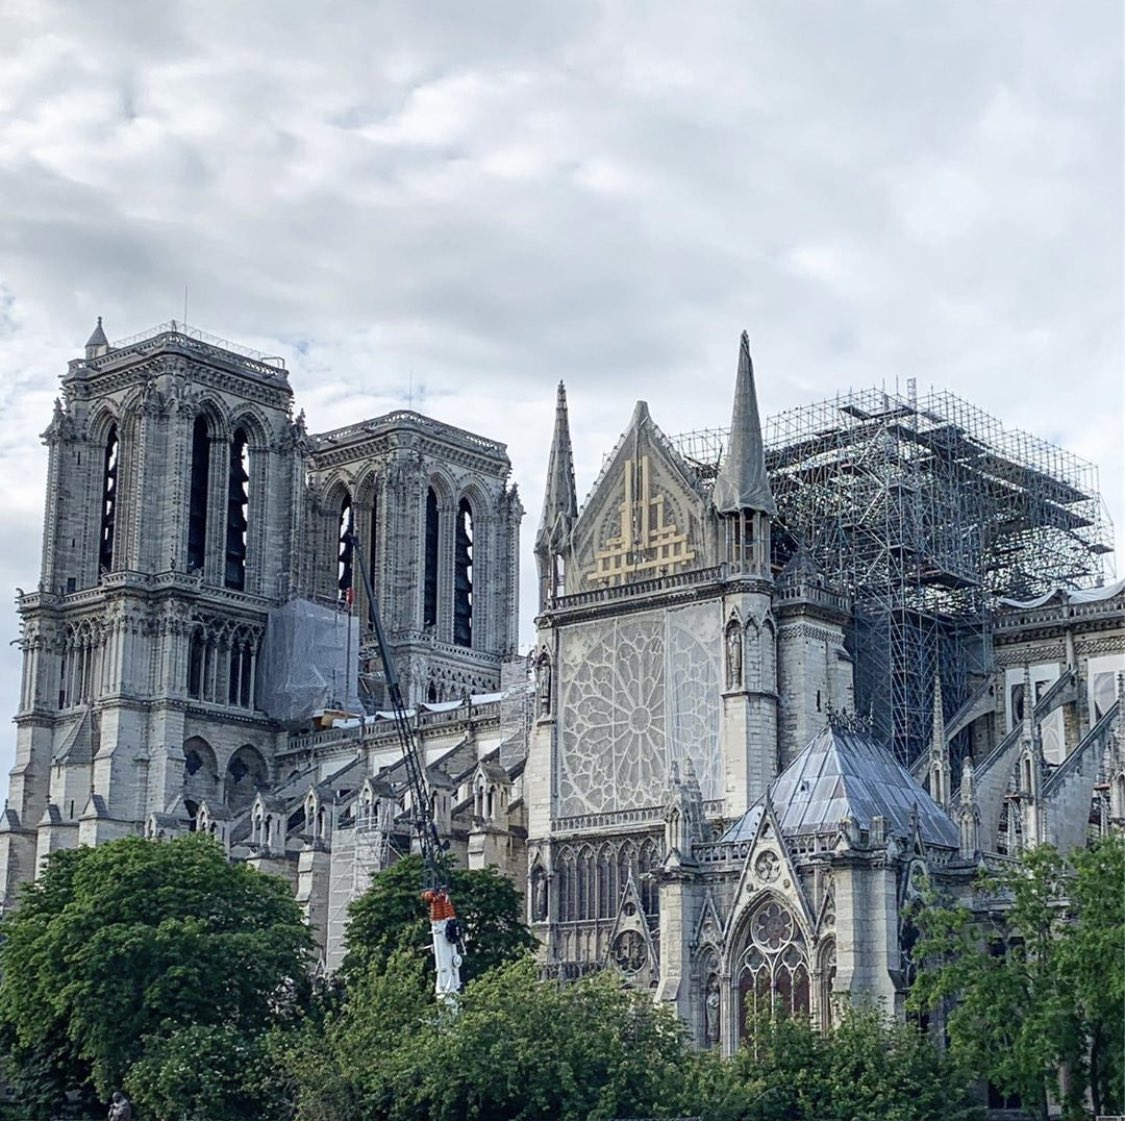 Notre-Dame now. #notredamecathedral #notredameparis #parisphoto via instagram.com/richardhine